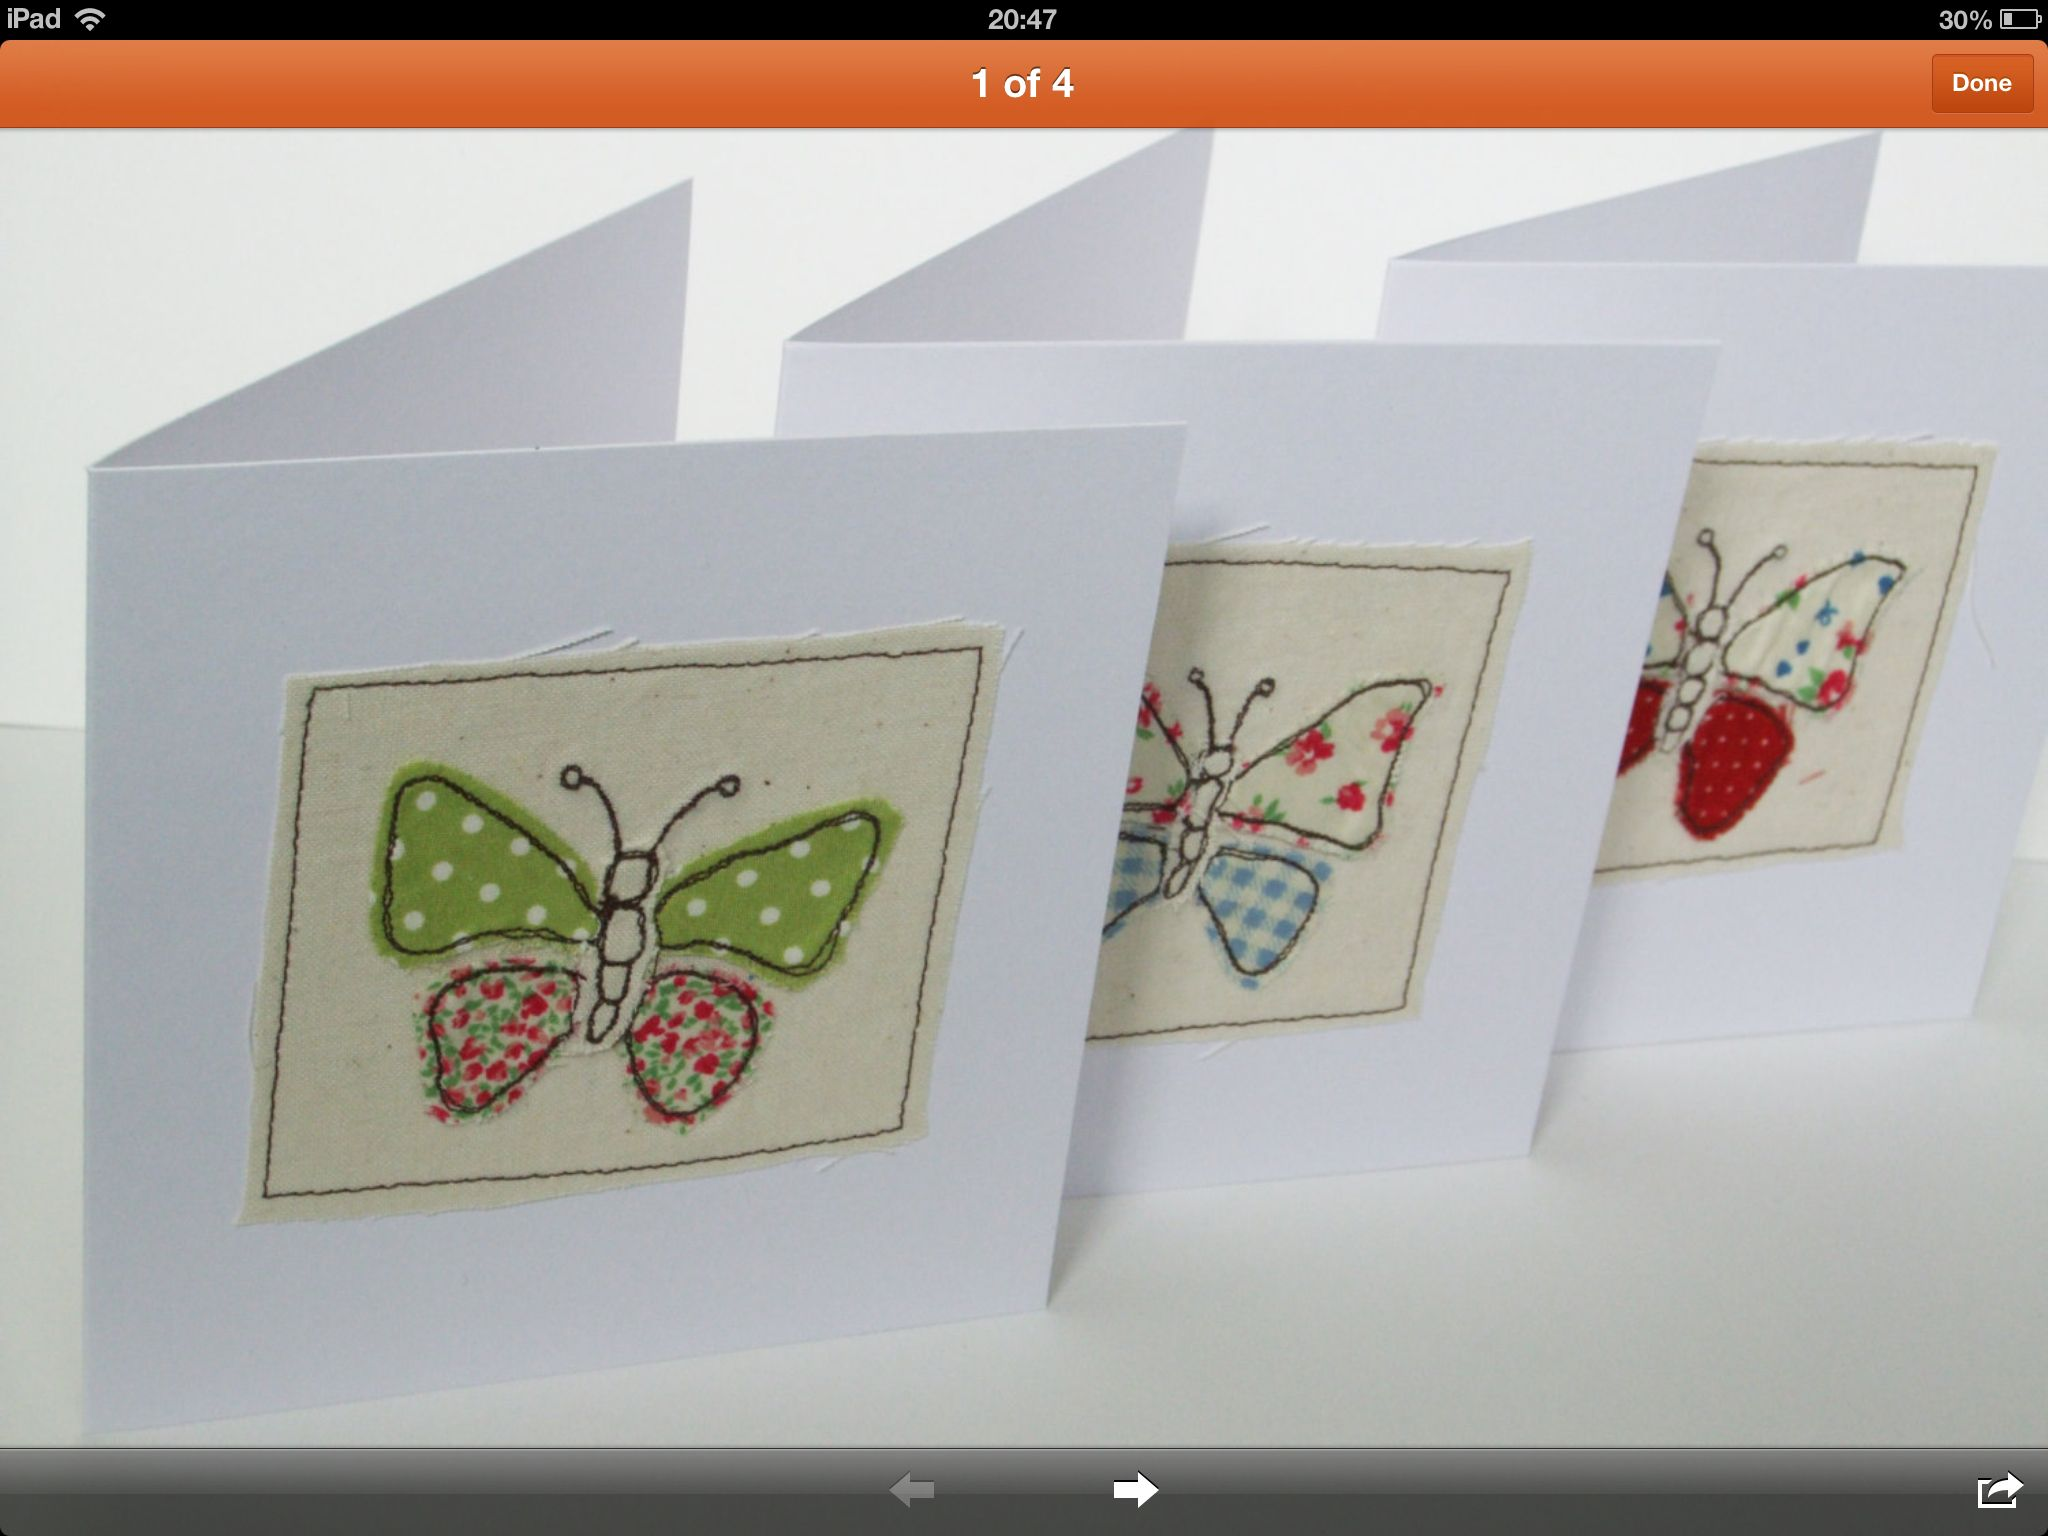 Butterfly machine embroidered cards cards pinterest cards butterfly card machine embroidered greeting card applique handmade card blank card card for a girl wife girlfriend mum mom kristyandbryce Image collections